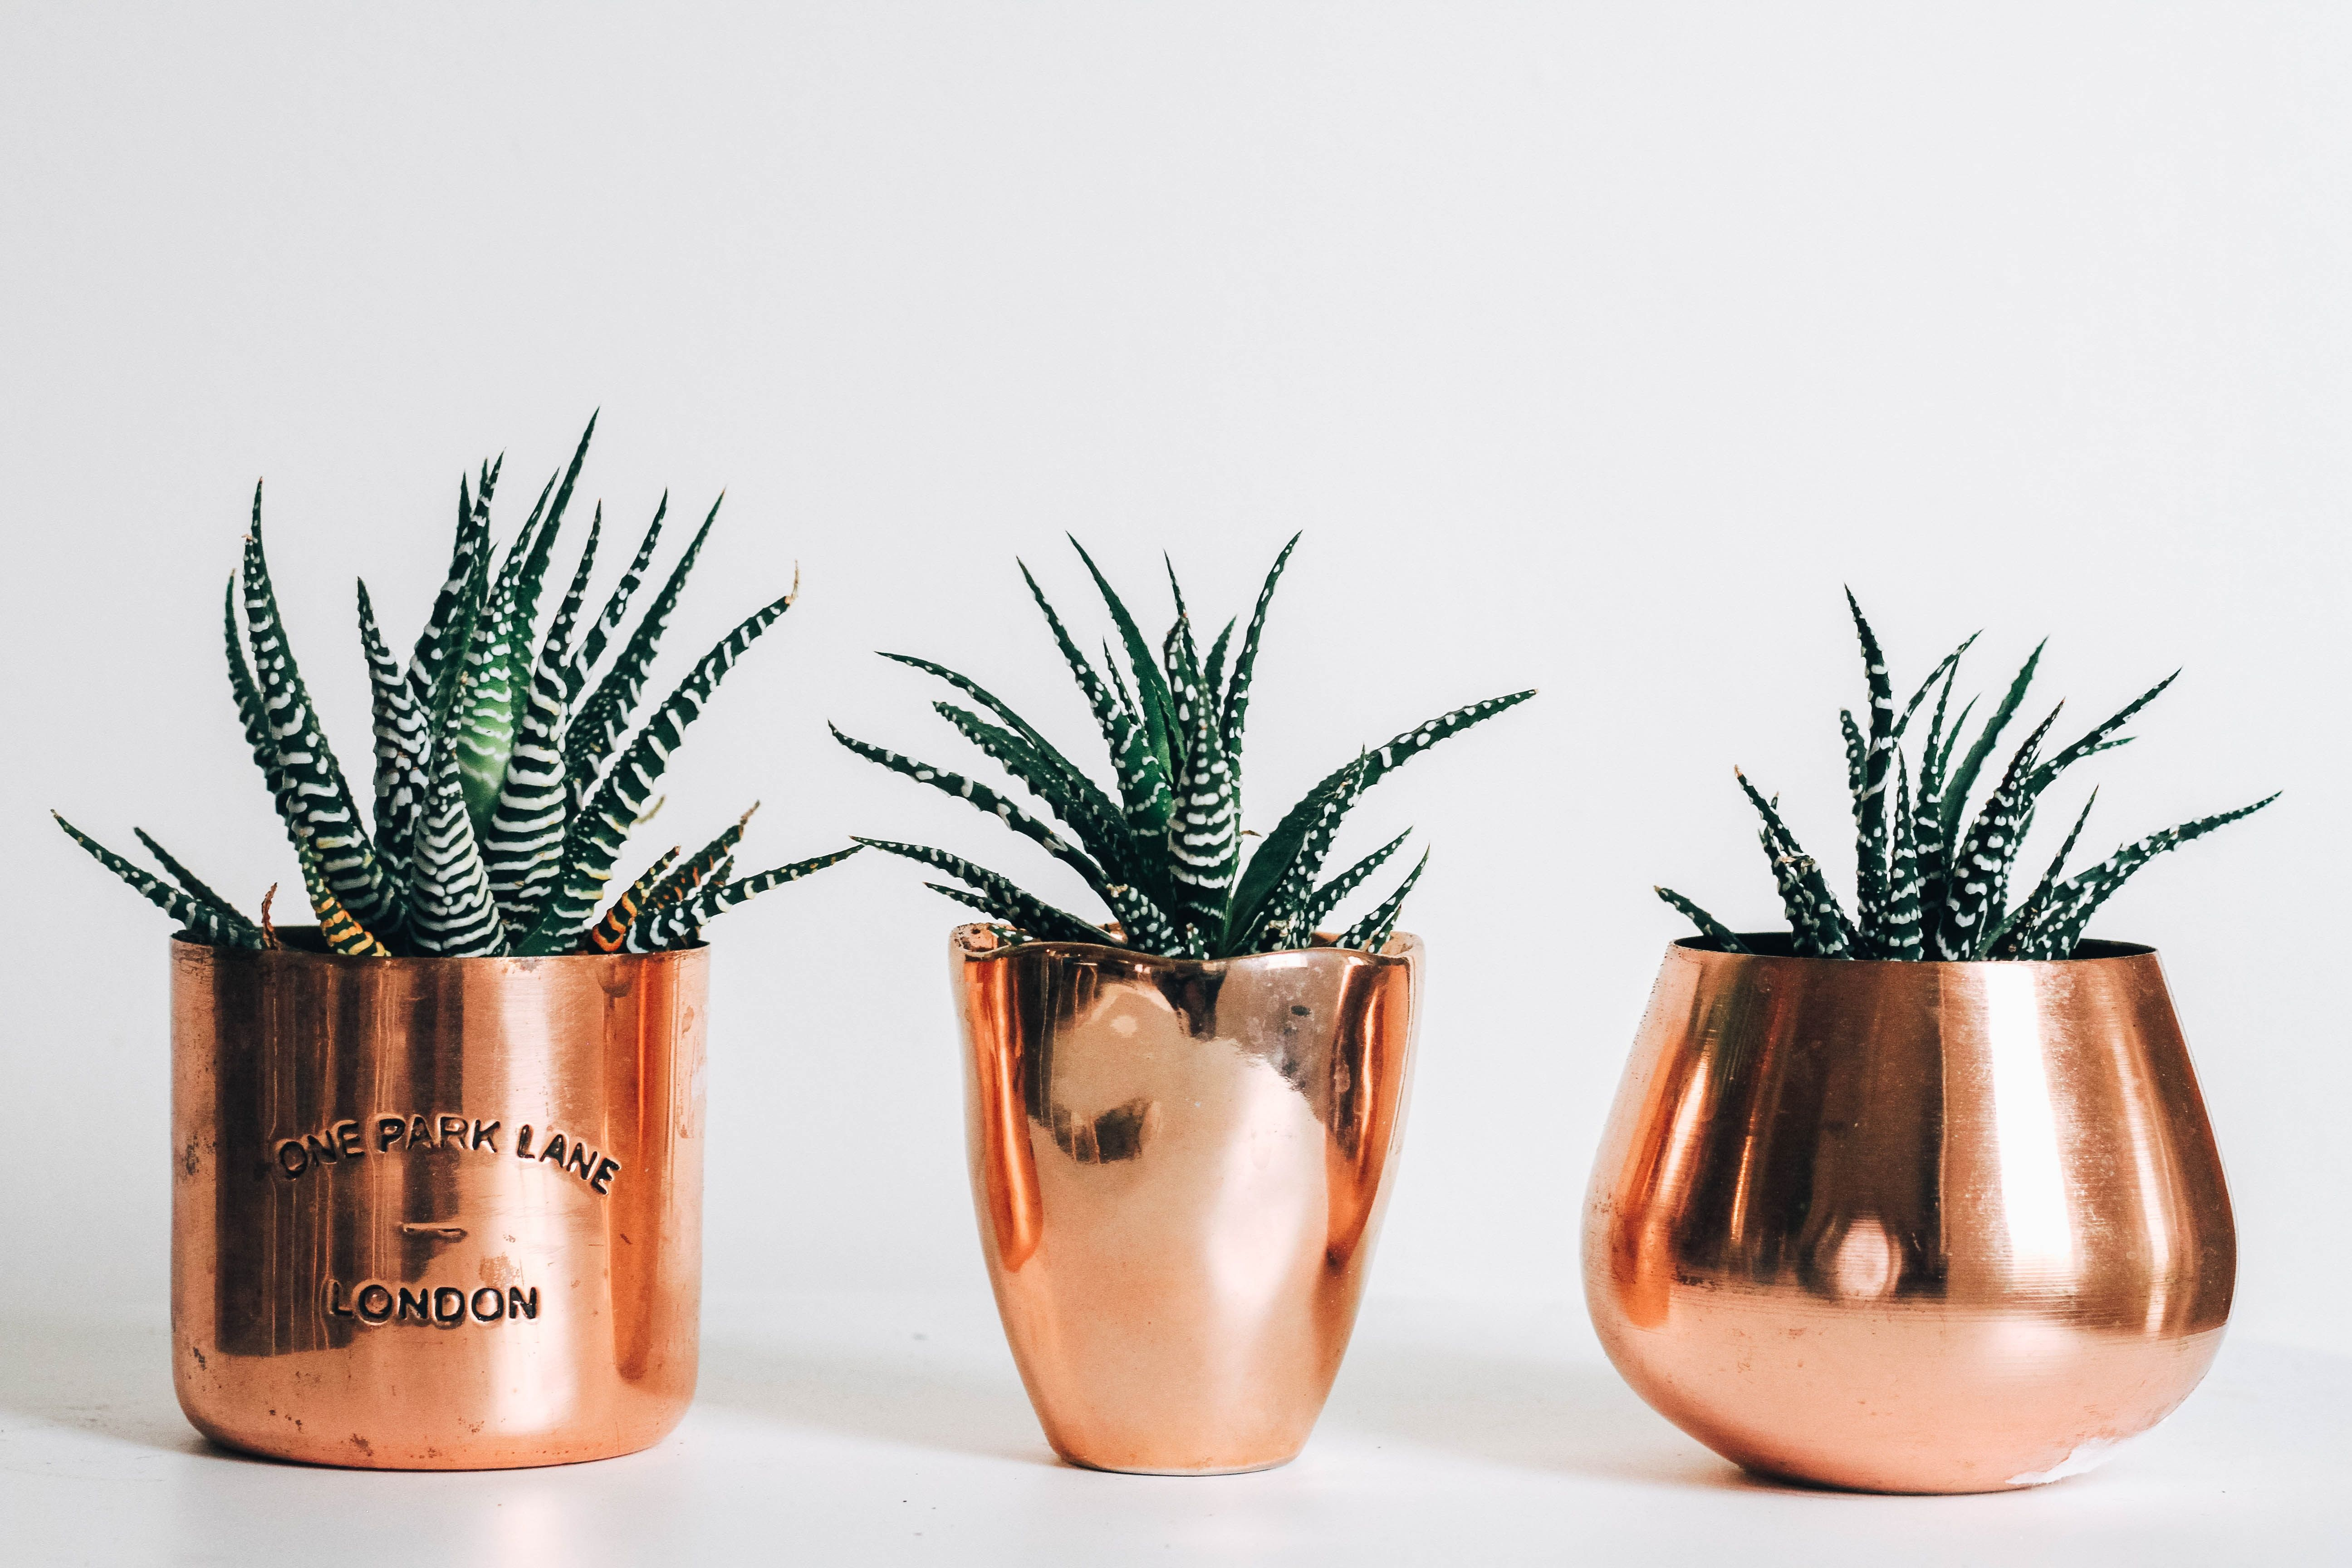 Rose Gold Laptop Wallpapers Wallpaper Cave Rose gold background aesthetic 12 aesthetic pink and rose gold backgrounds, perfect for your instagram or social media profiles! wallpaper cave